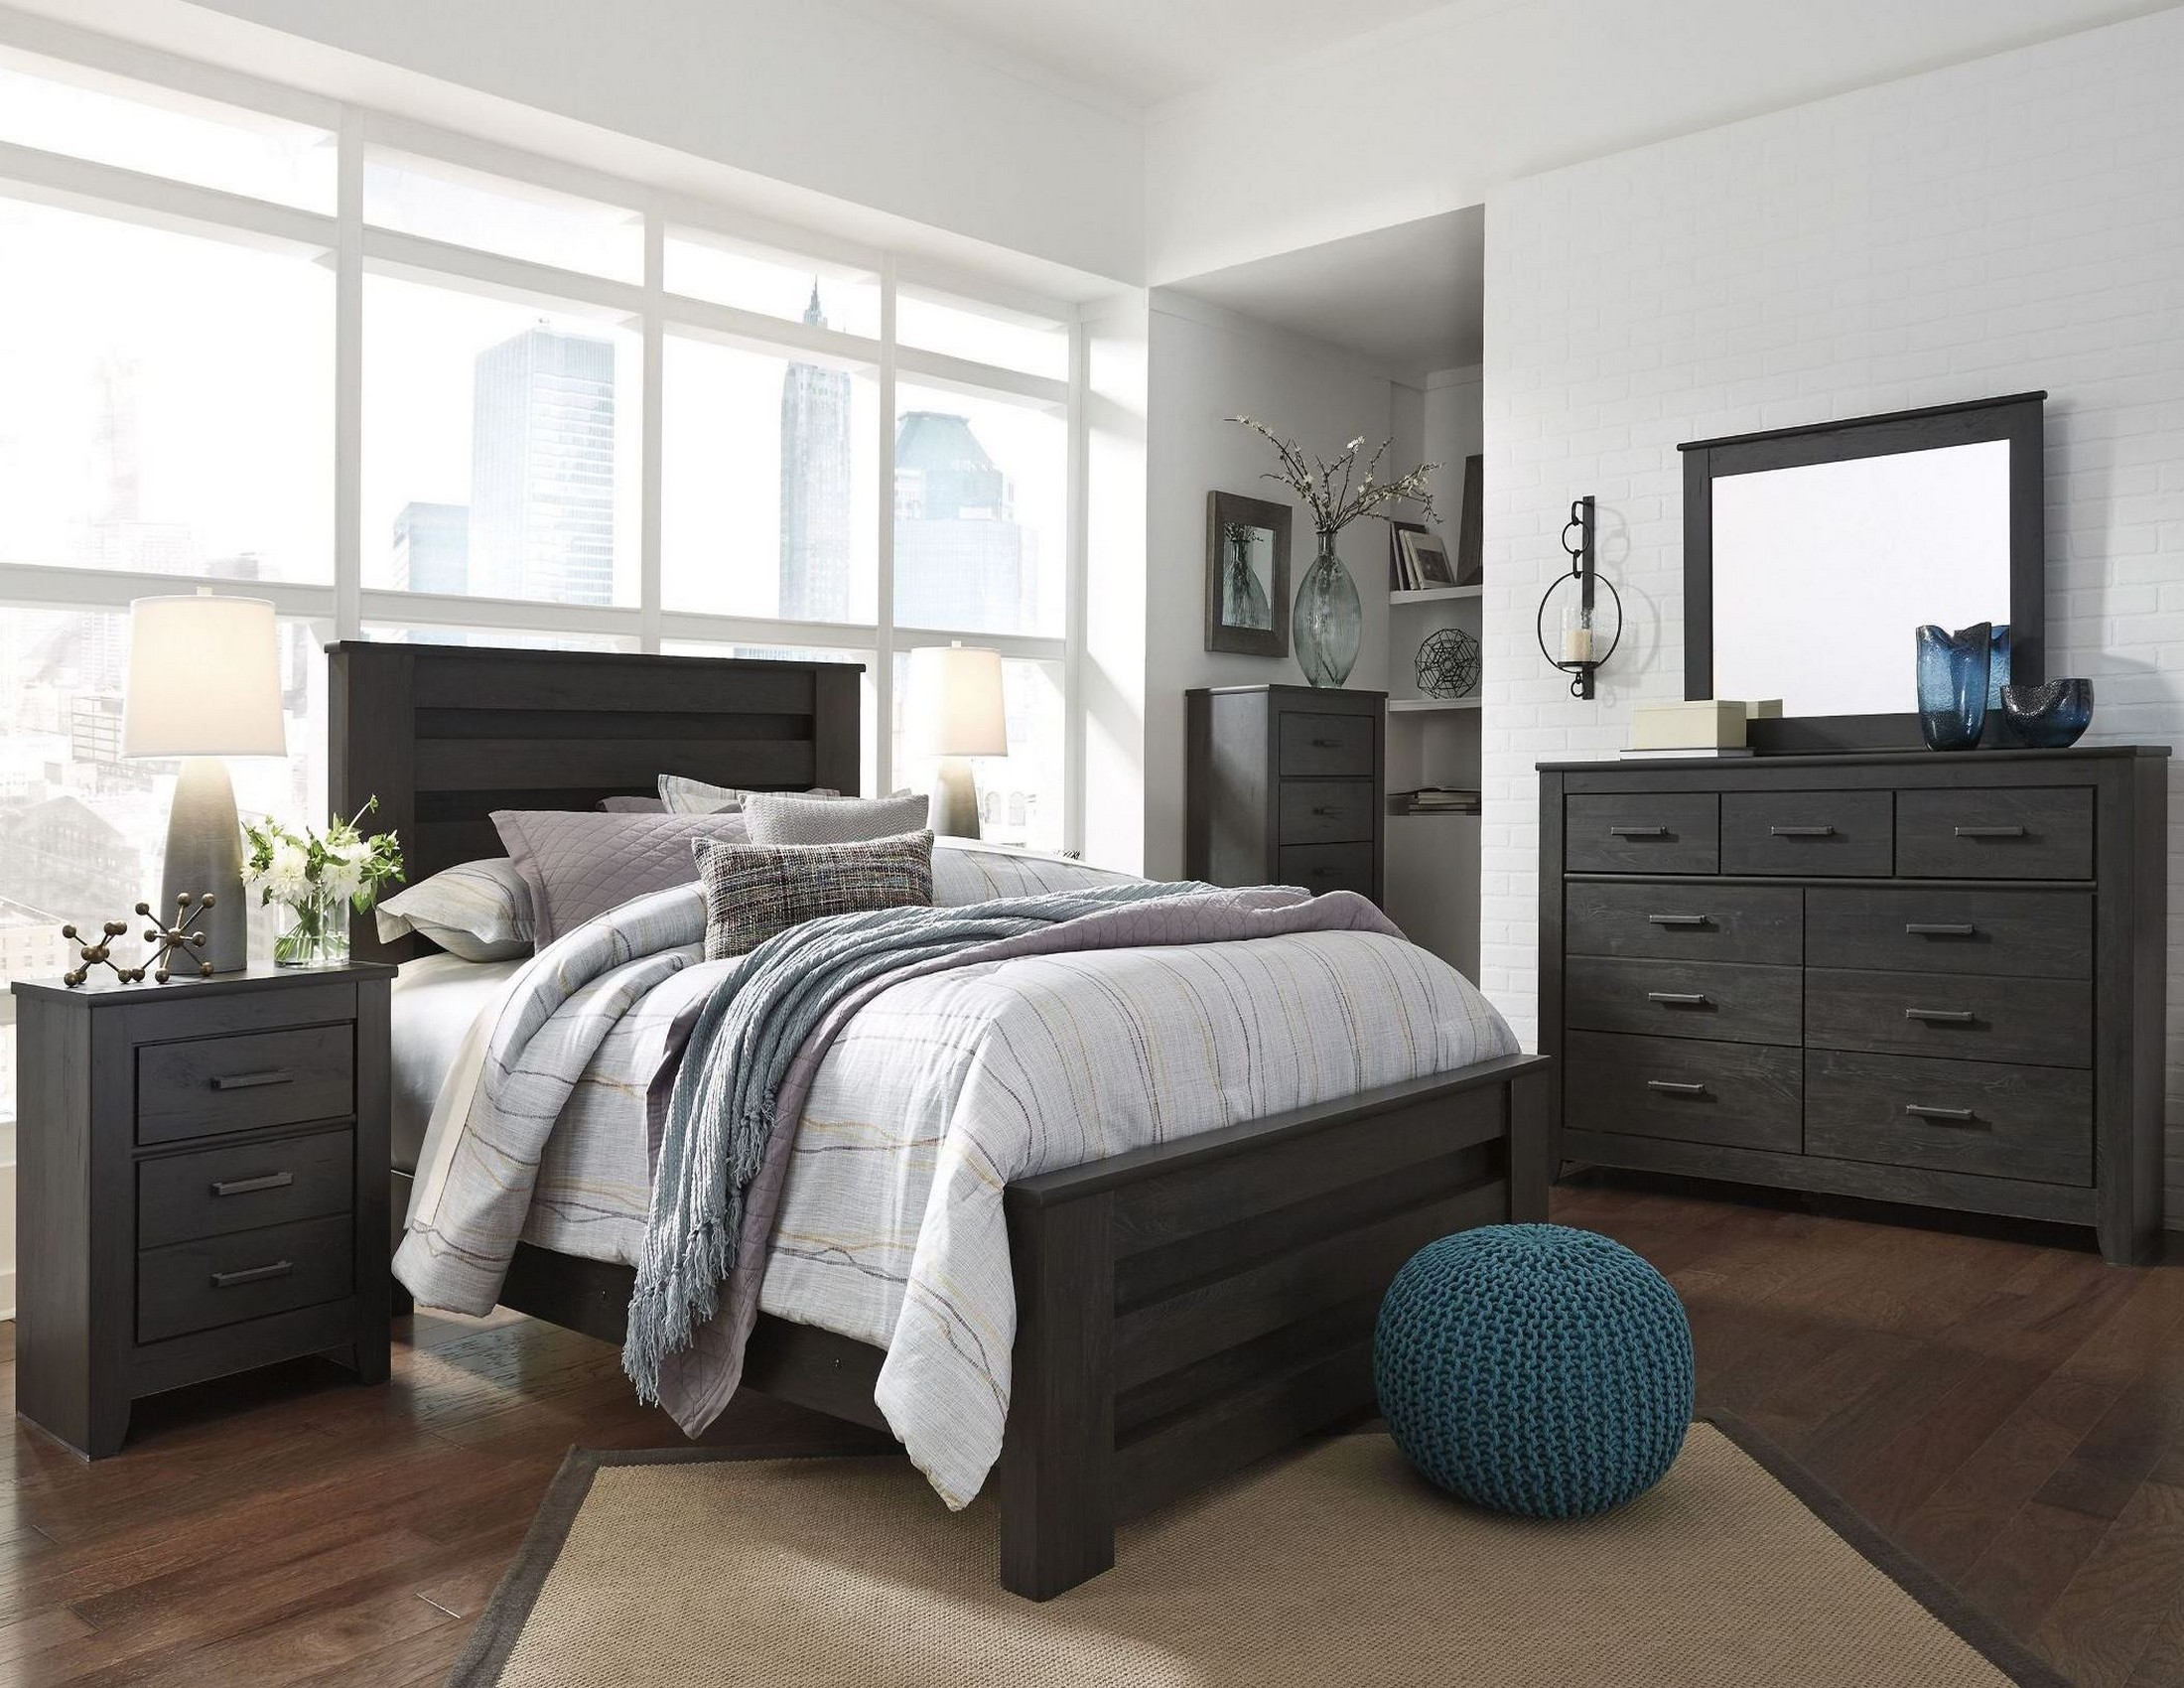 Brinxton Black Poster Bedroom Set From Ashley Coleman